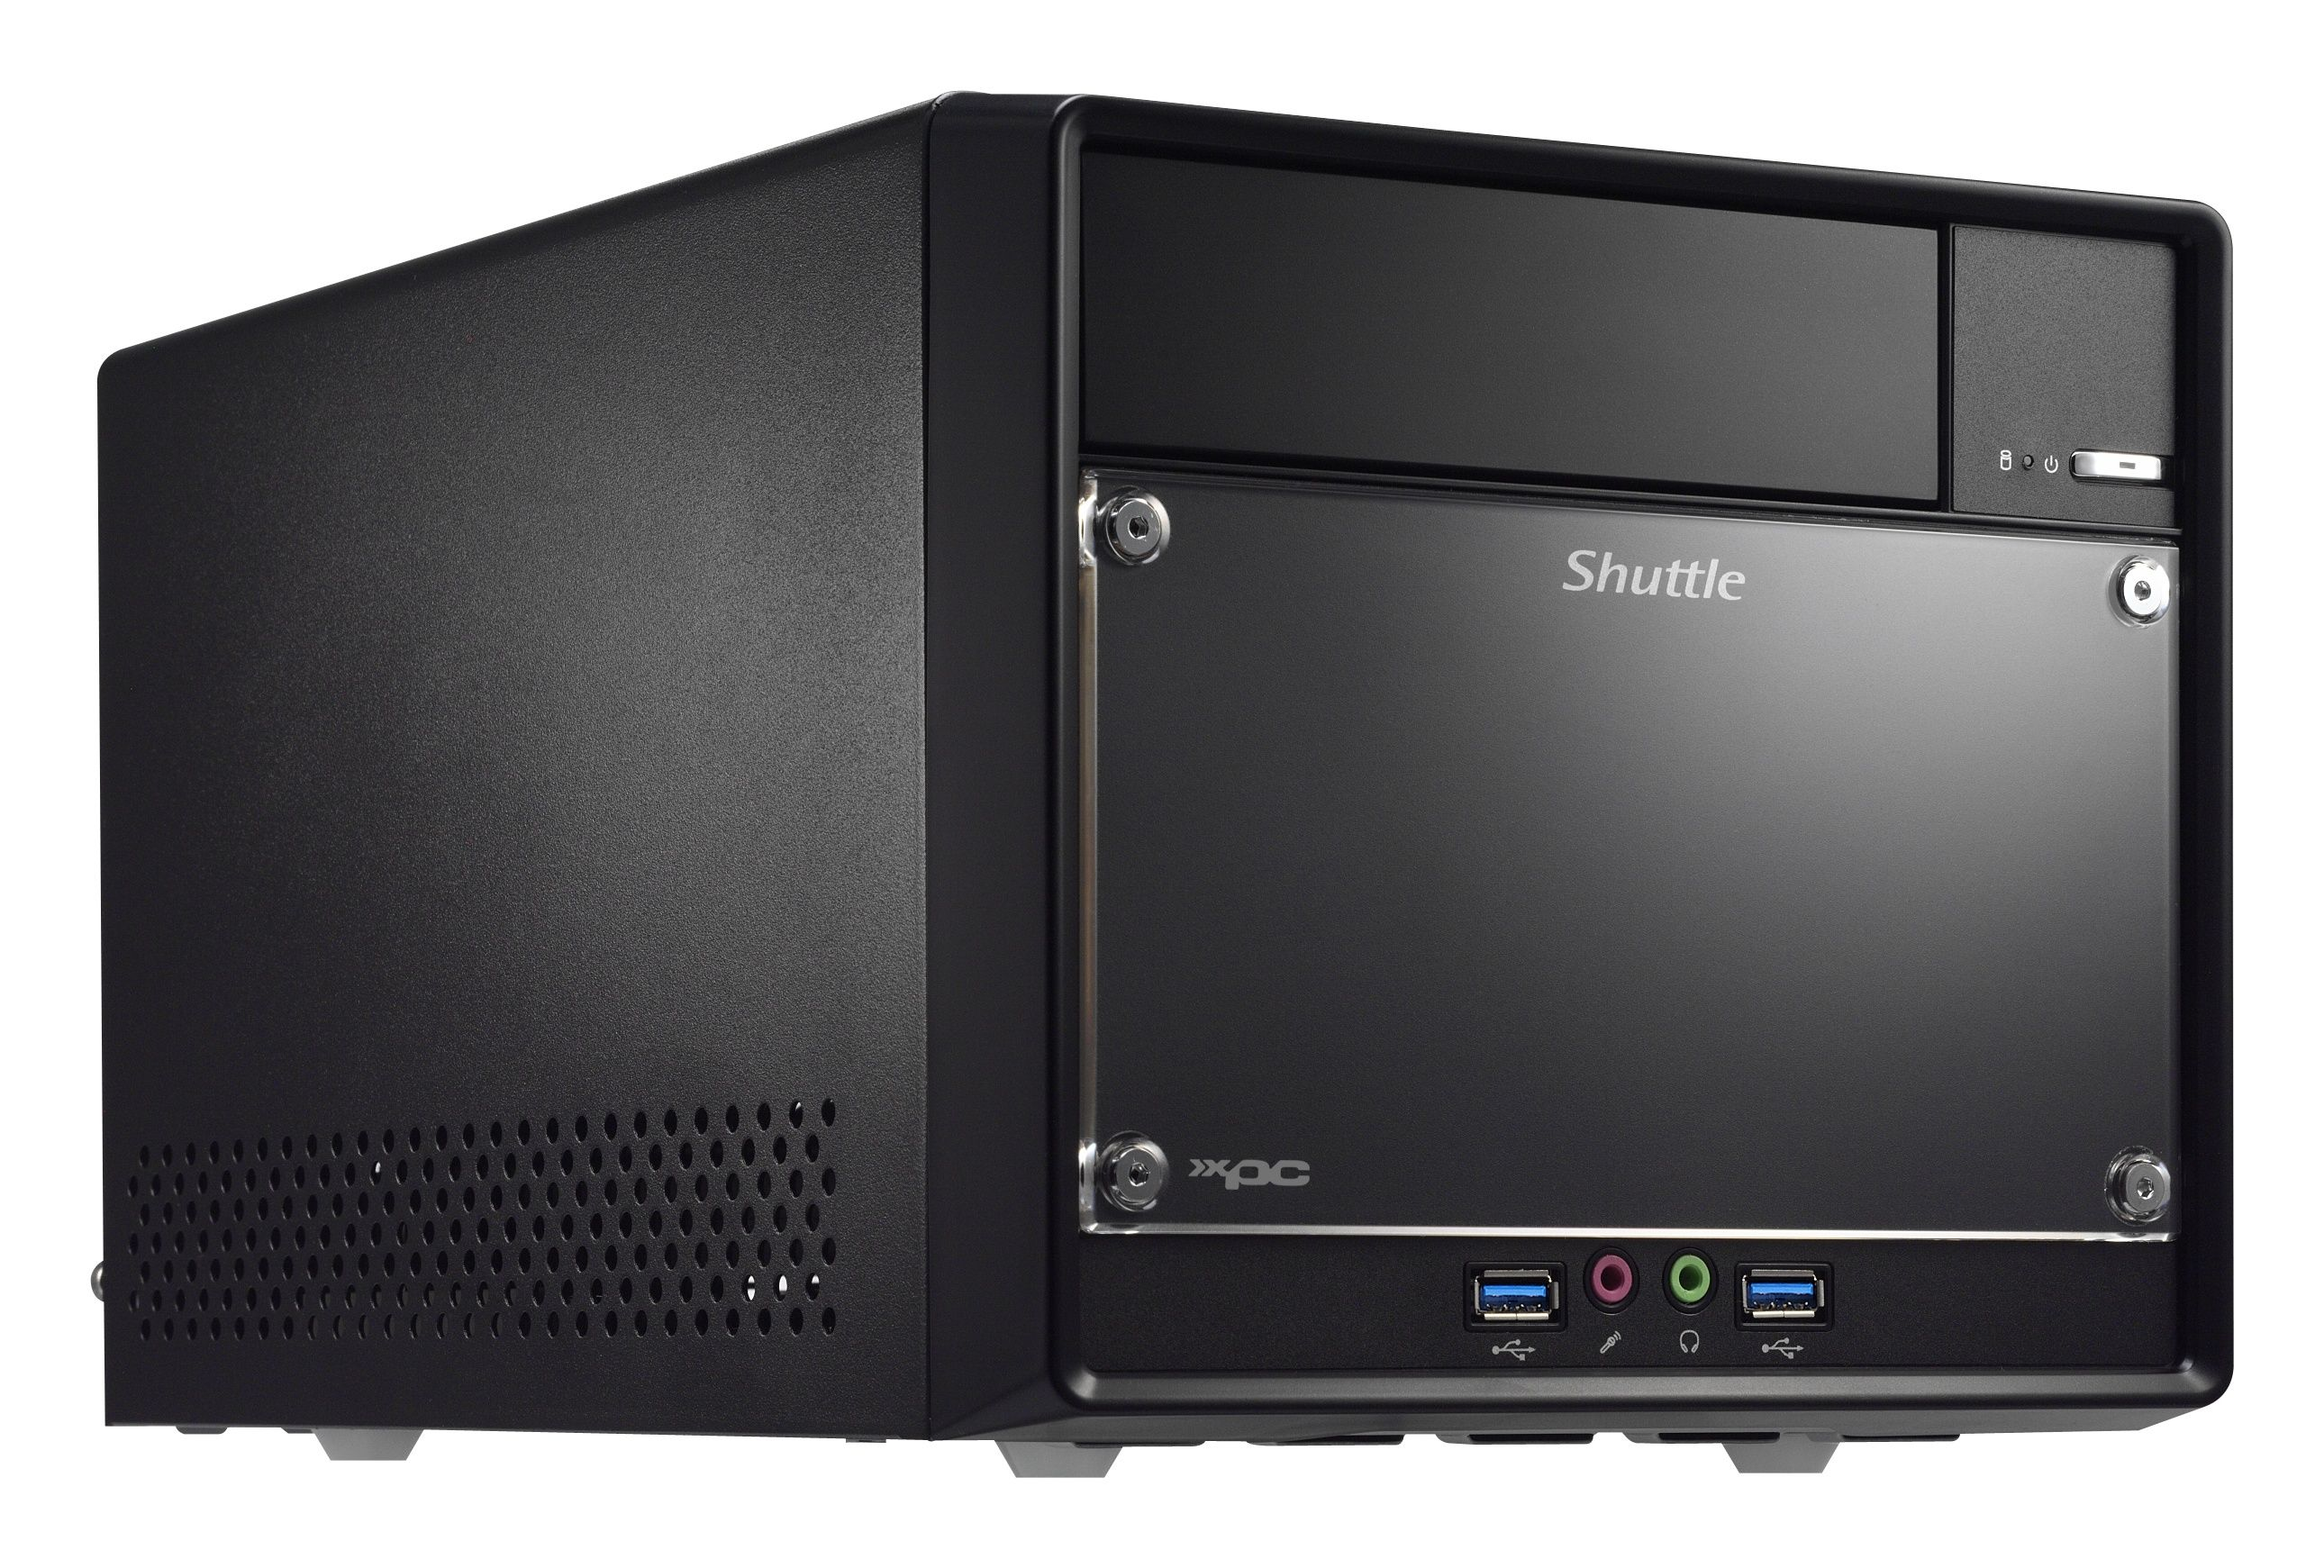 Shuttle sh110r4 intel h110 desktop black pc workstation barebone ebay